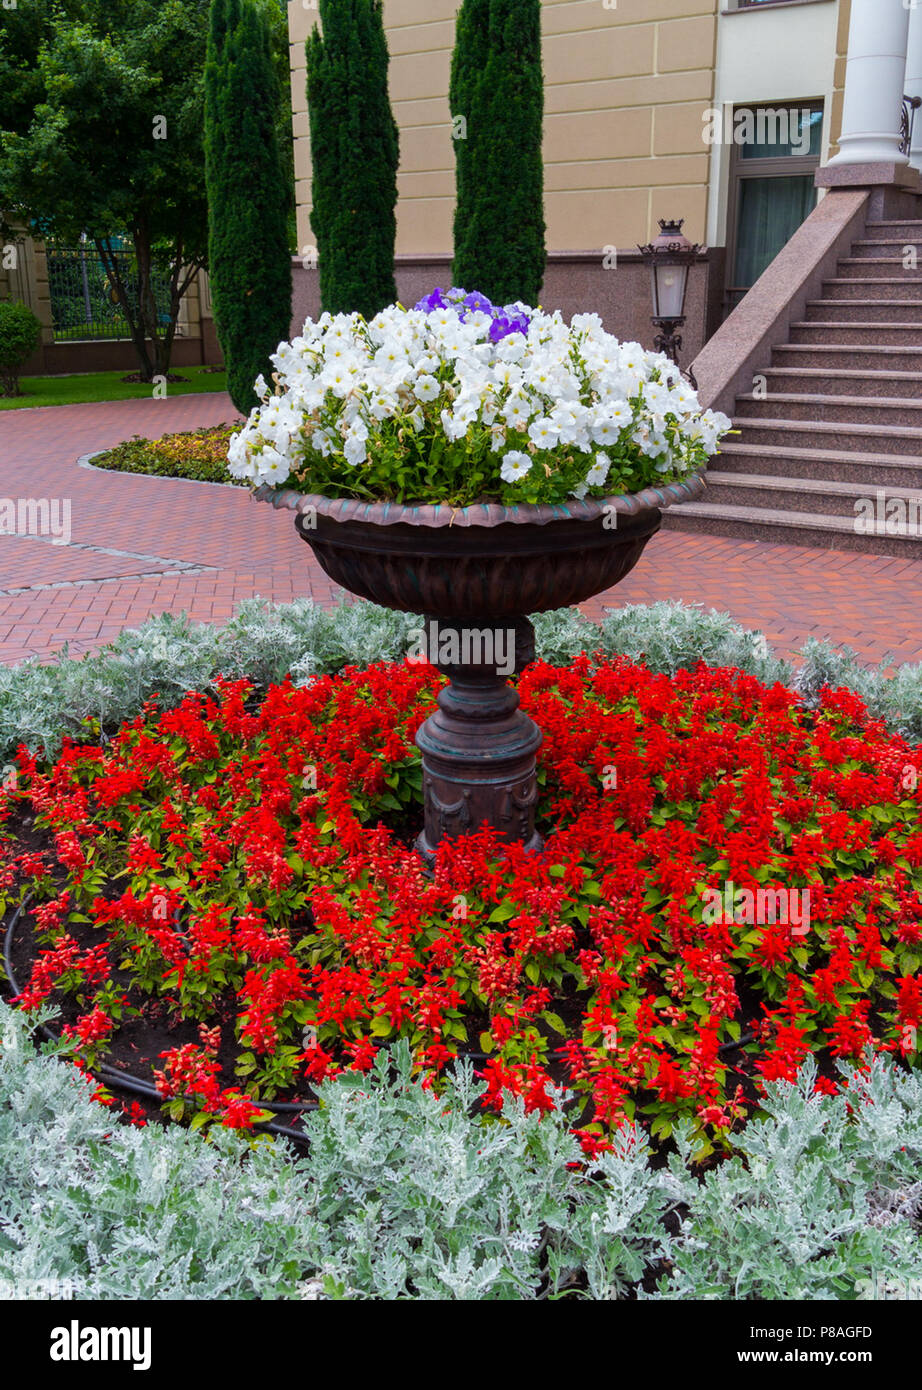 A Round Flowerbed With Red Flowers On Which Stands A Large Brown